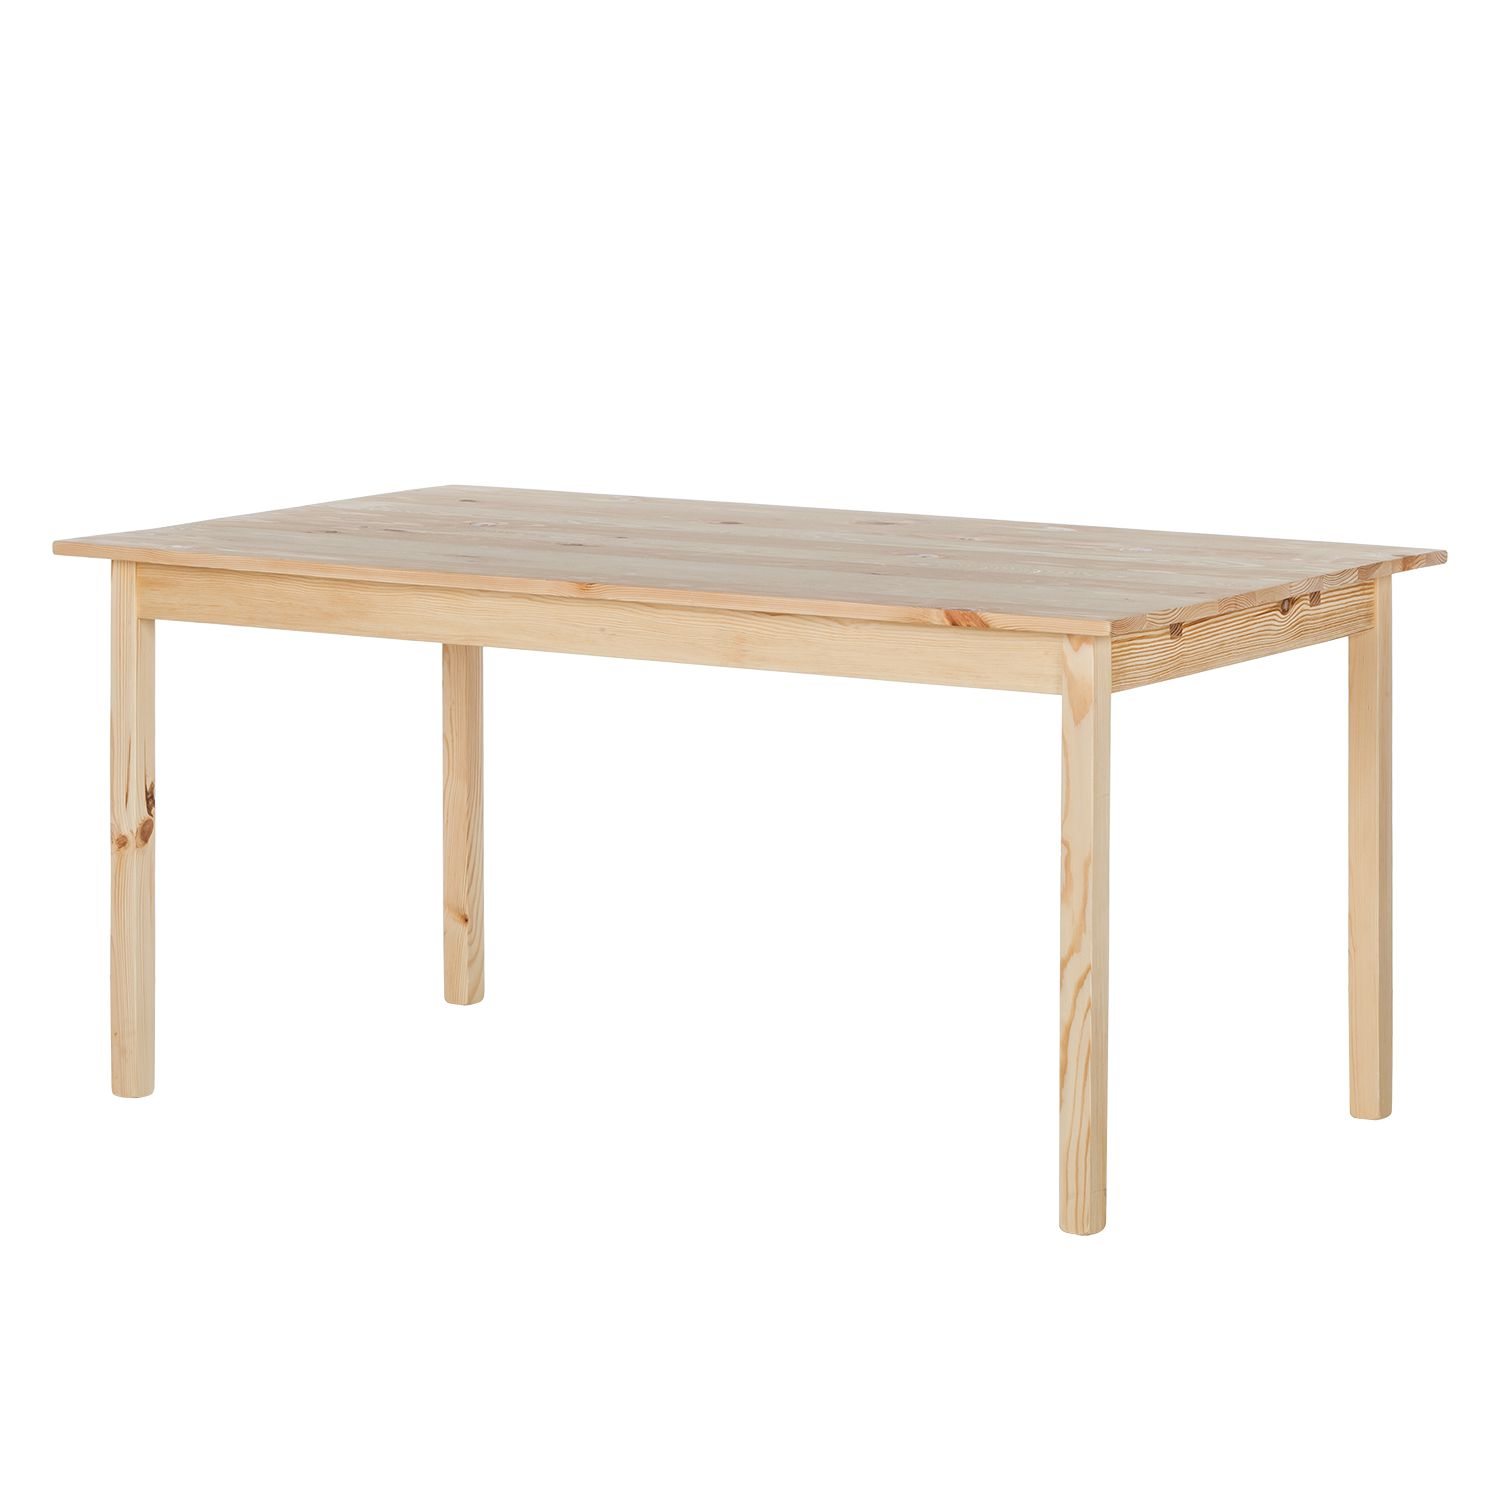 Table de salle à manger KiYDOO wood (extensible) - Pin massif, mooved